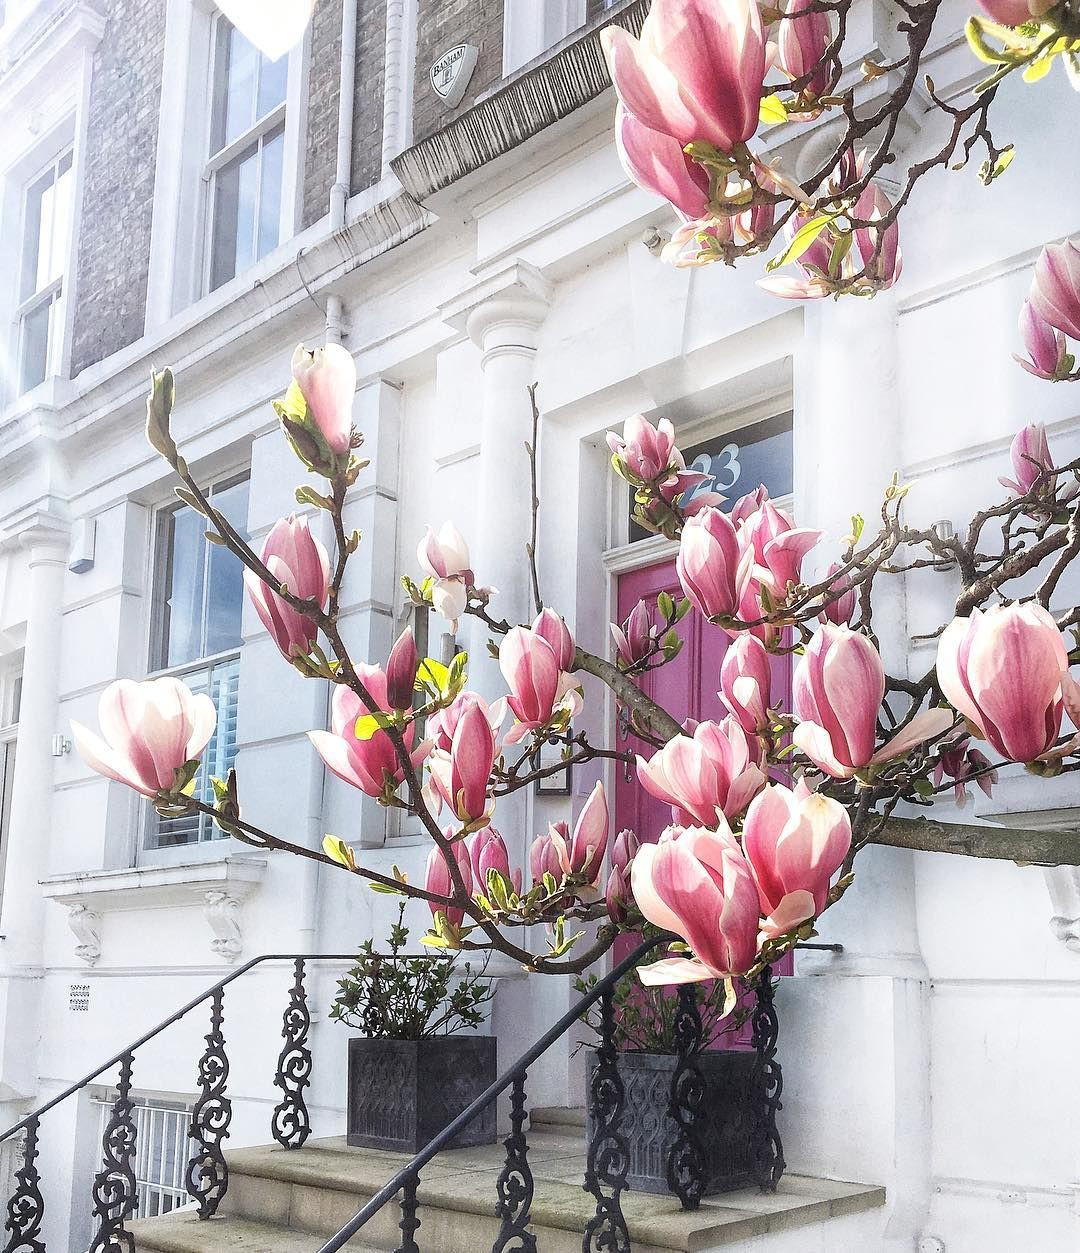 How To Identify 11 Types Of Magnolia Flowers Pink White Flowers Blooming Trees Magnolia Flower